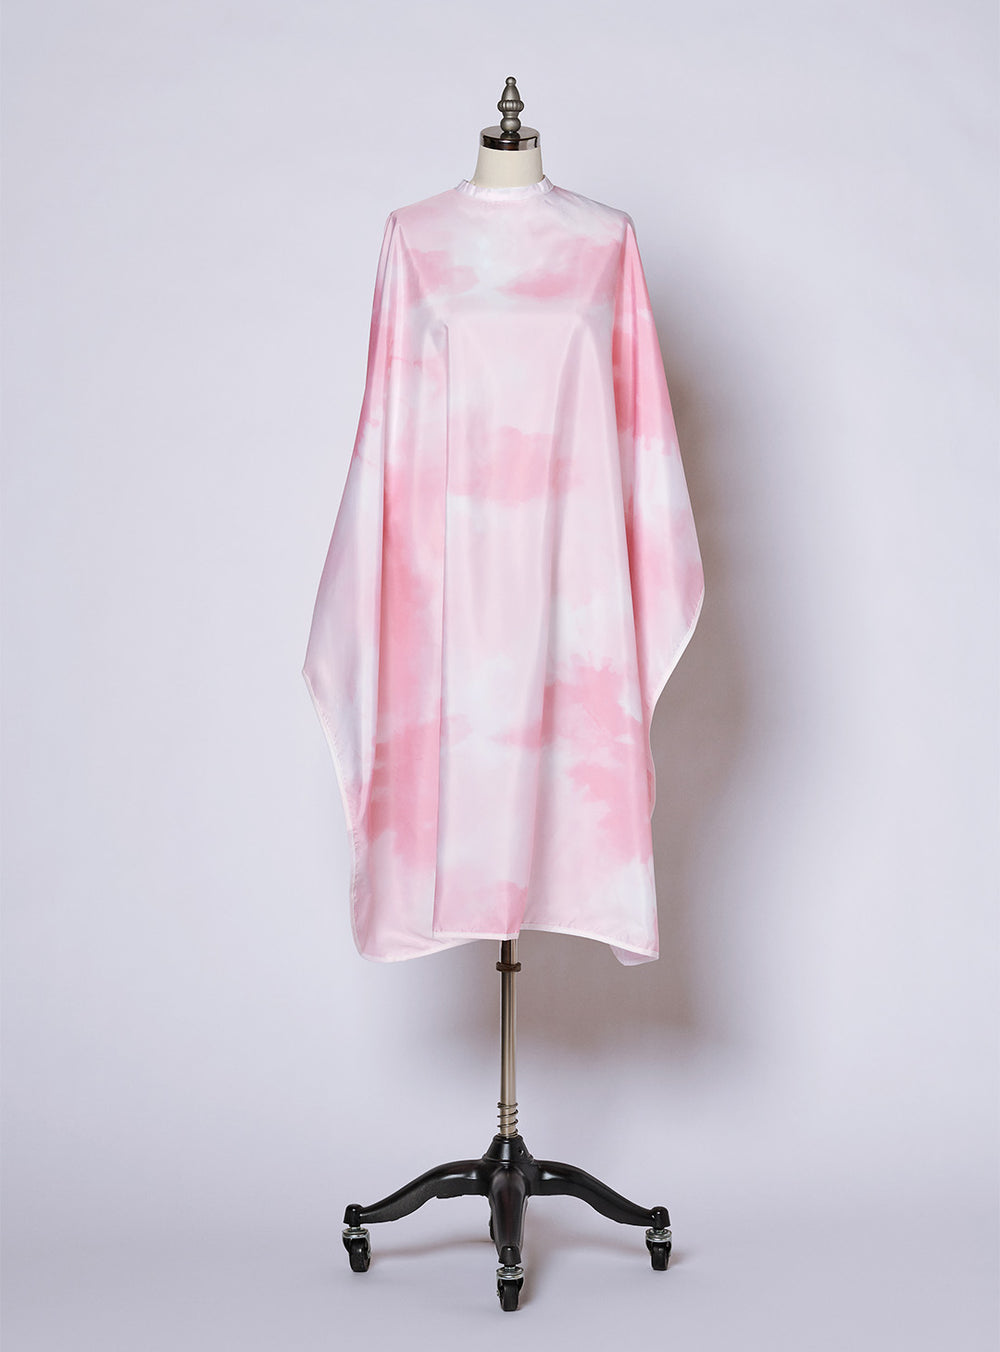 Fromm Pro professional salon pink tie dye print hairstyling cape display